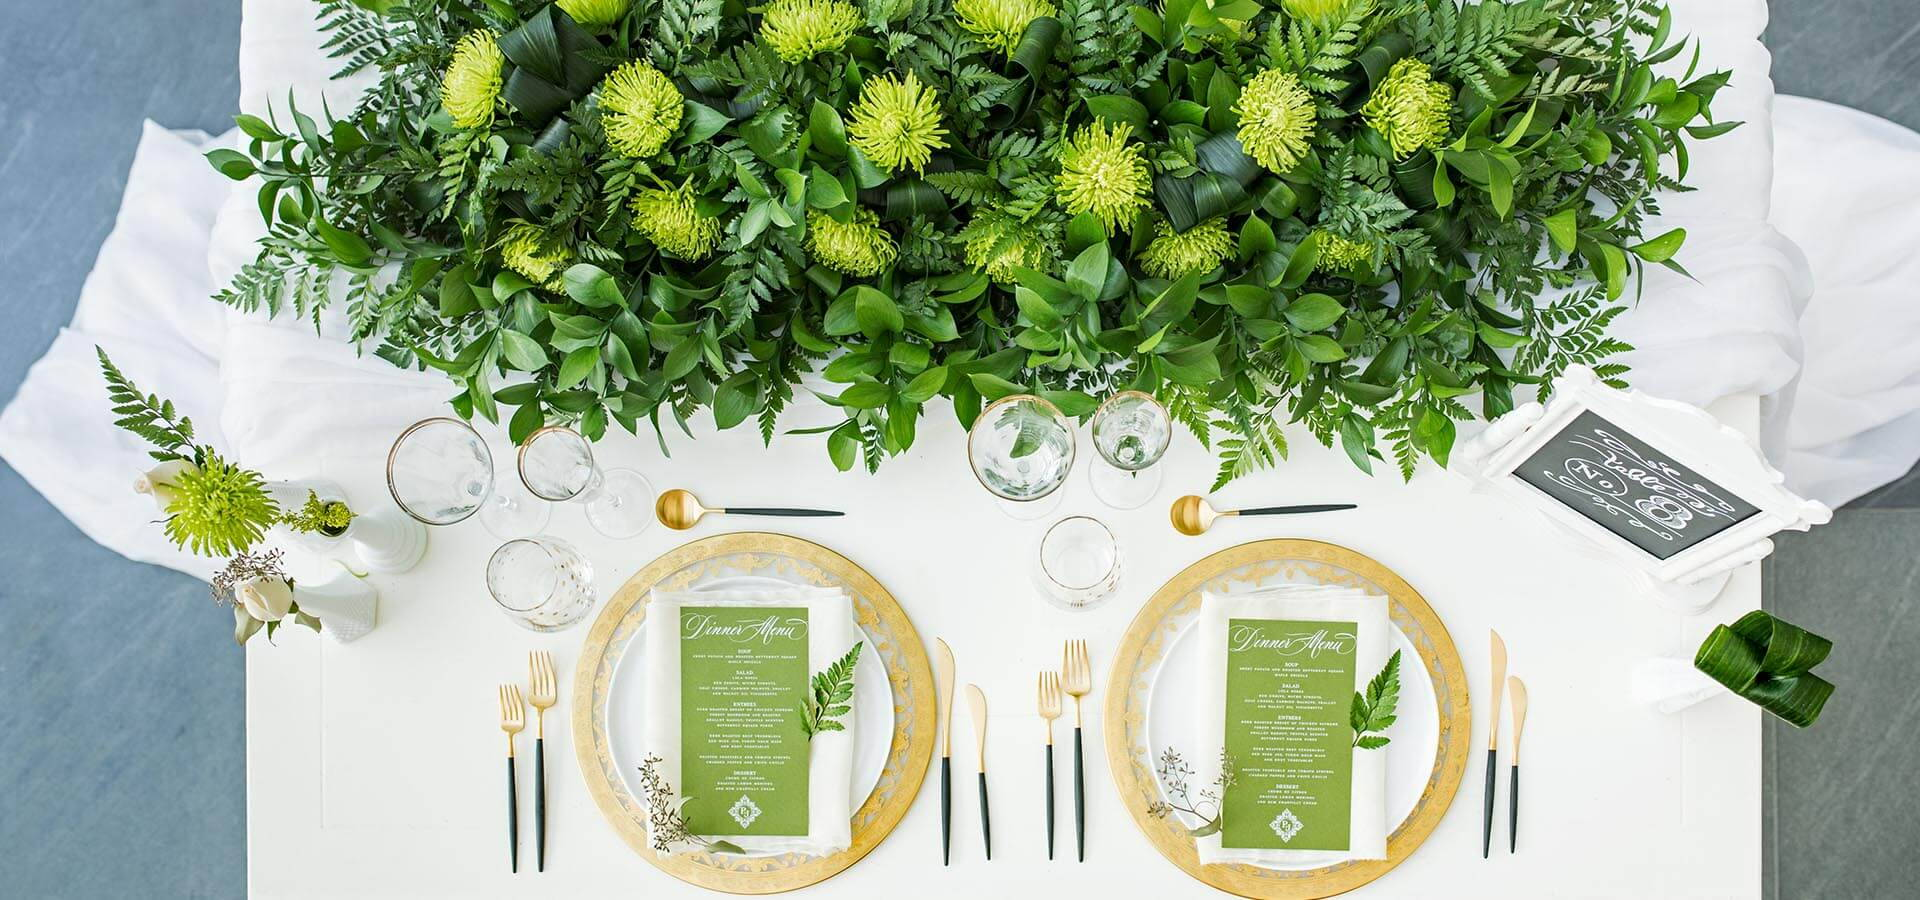 Hero image for A Stunning Green-and-Gold Style Shoot at Aga Khan Museum